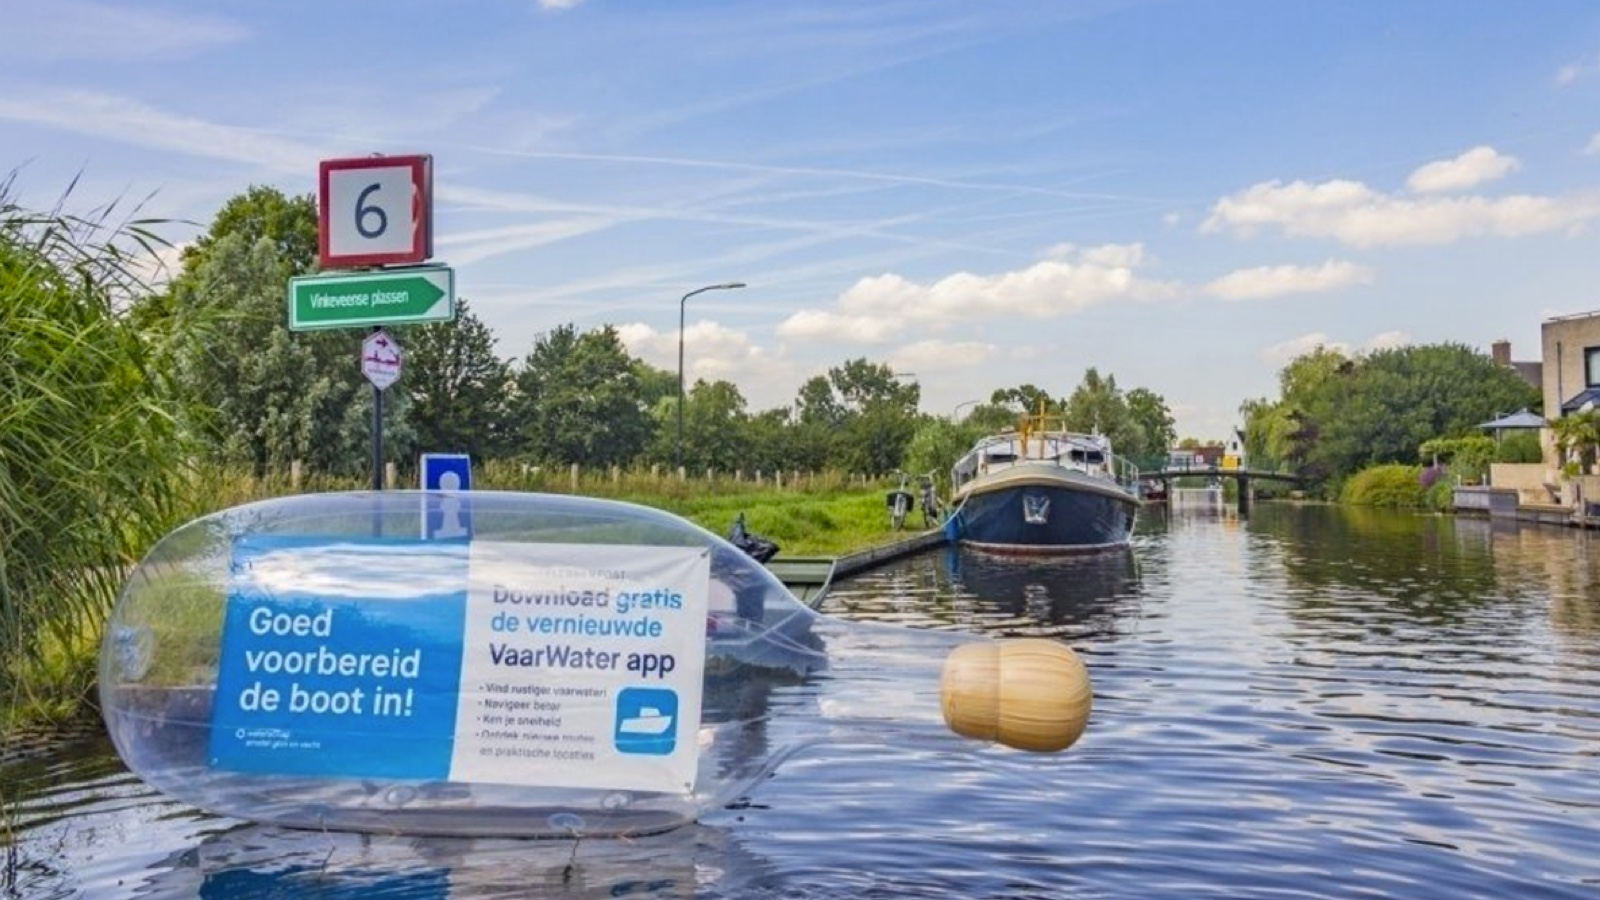 Opblaasbare fles - inflatable bottle - flessnepost activatie 03 - waternet - Publi air